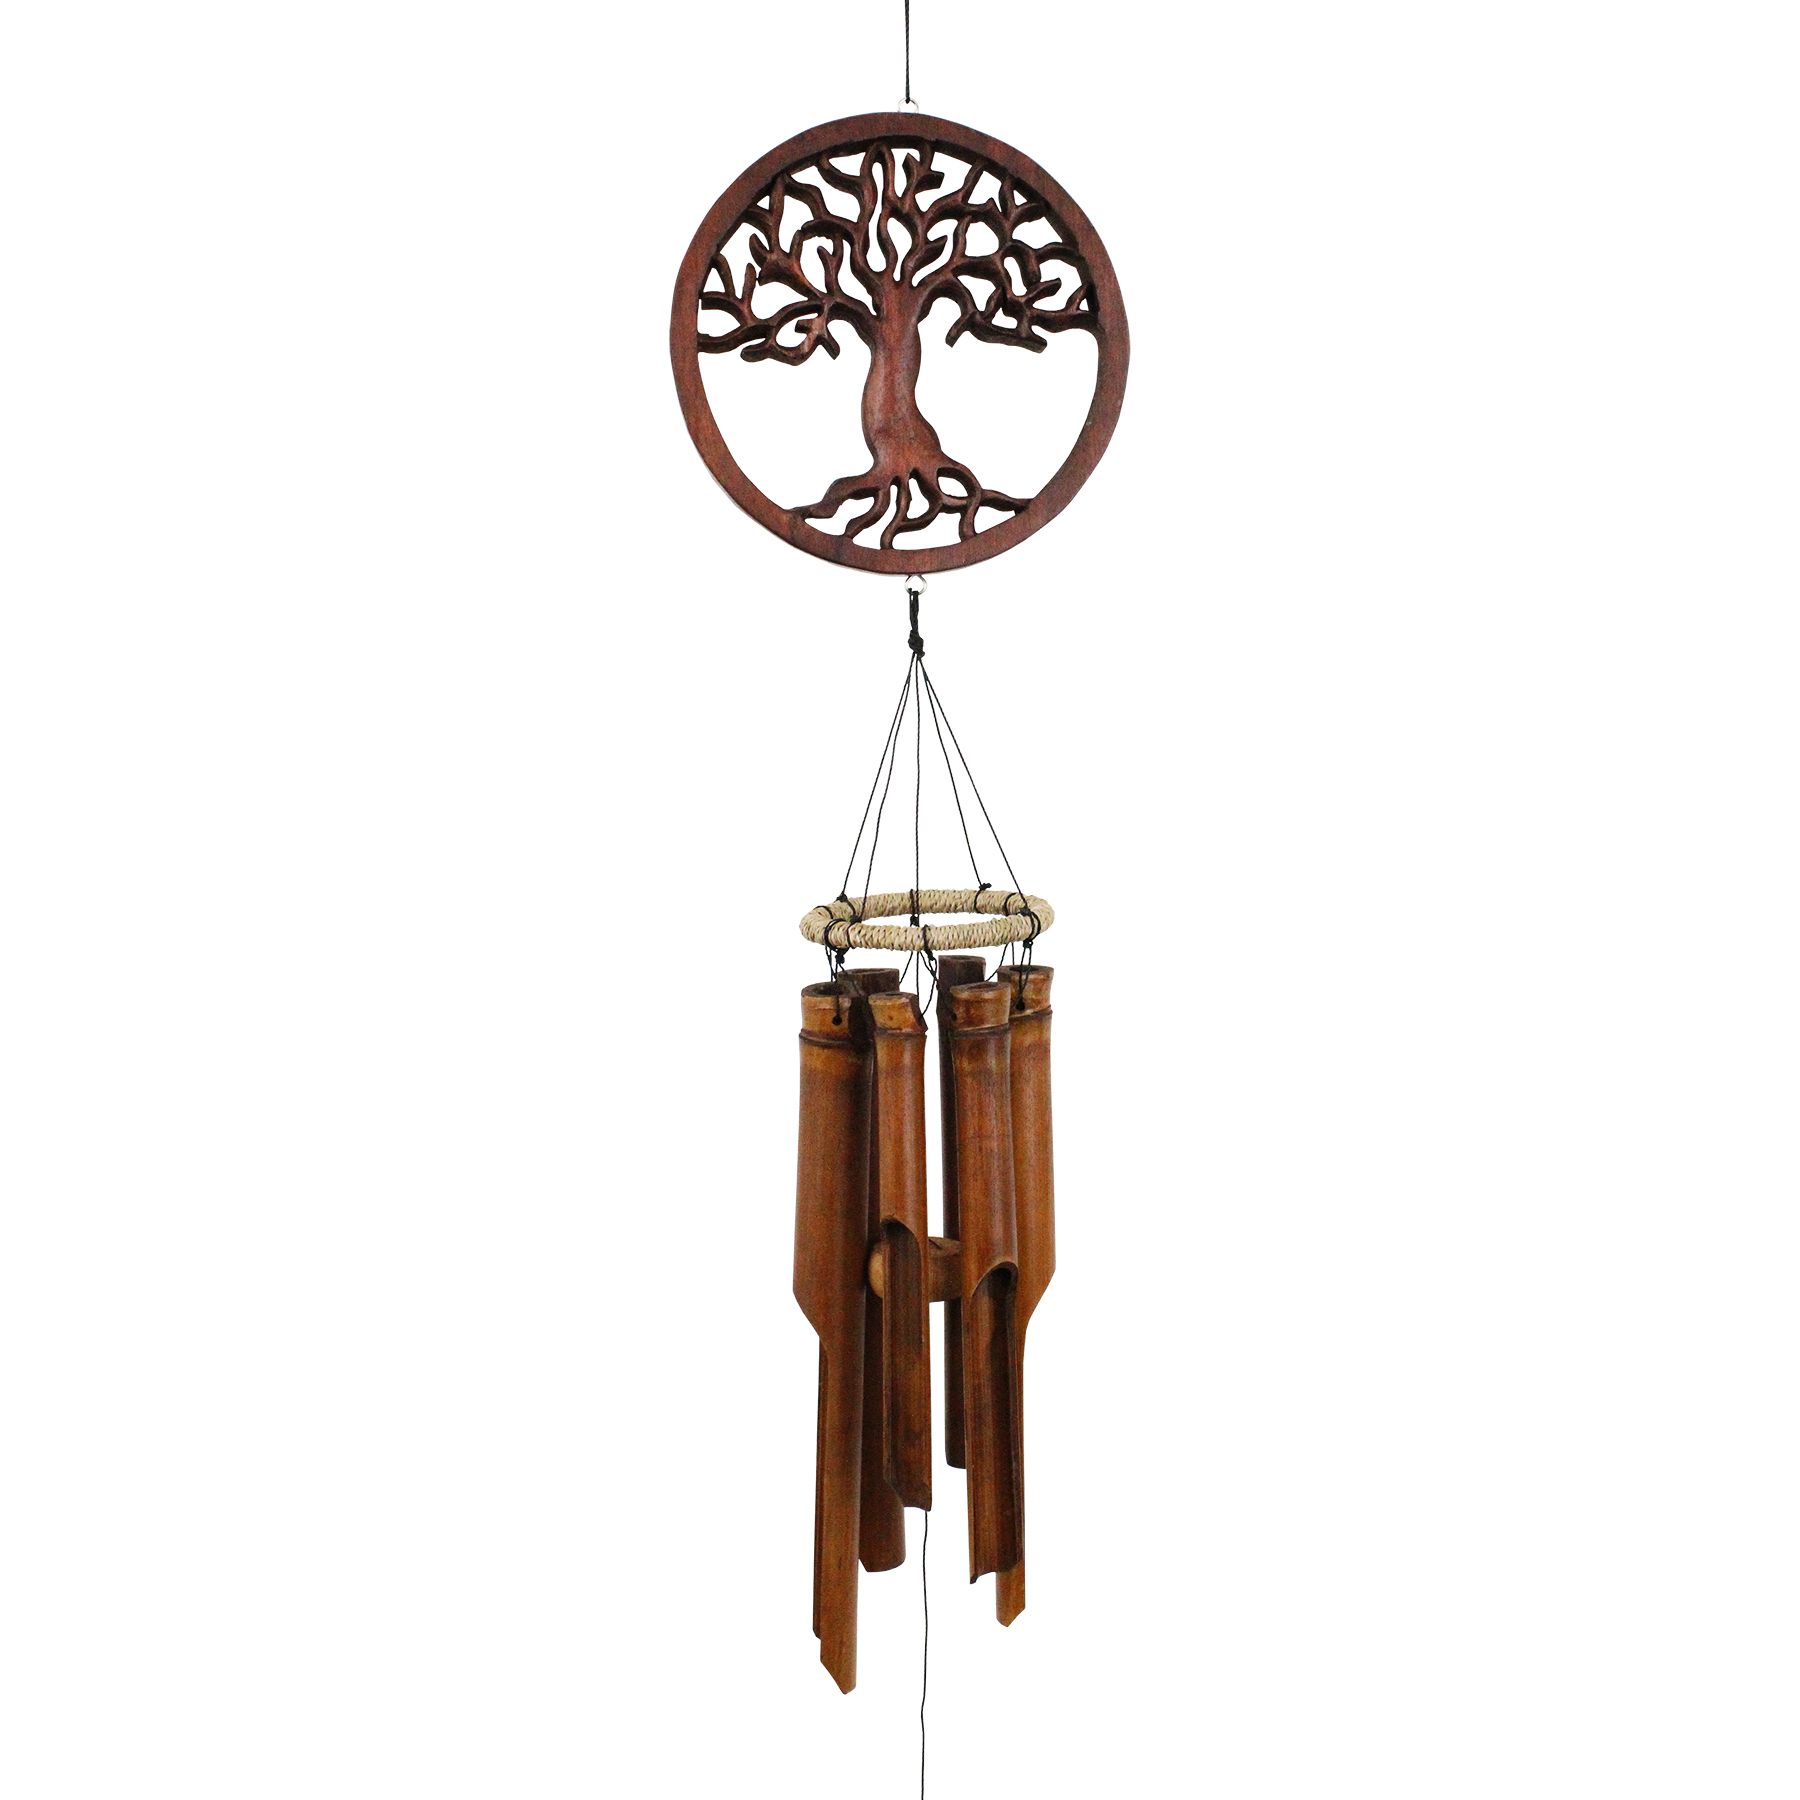 272 - Tree of Life Bamboo Wind Chime